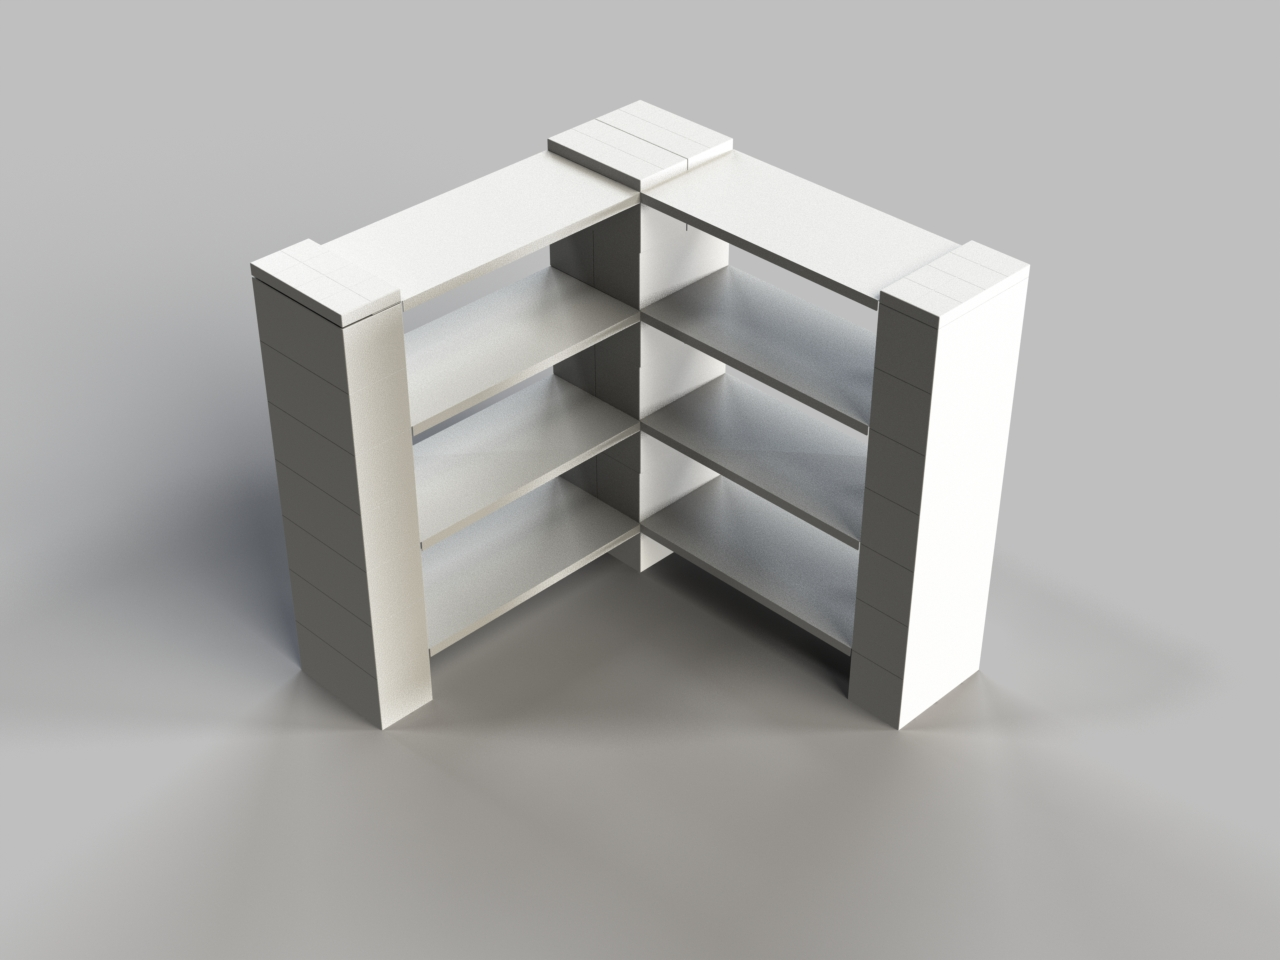 4 Level Corner Shelf B